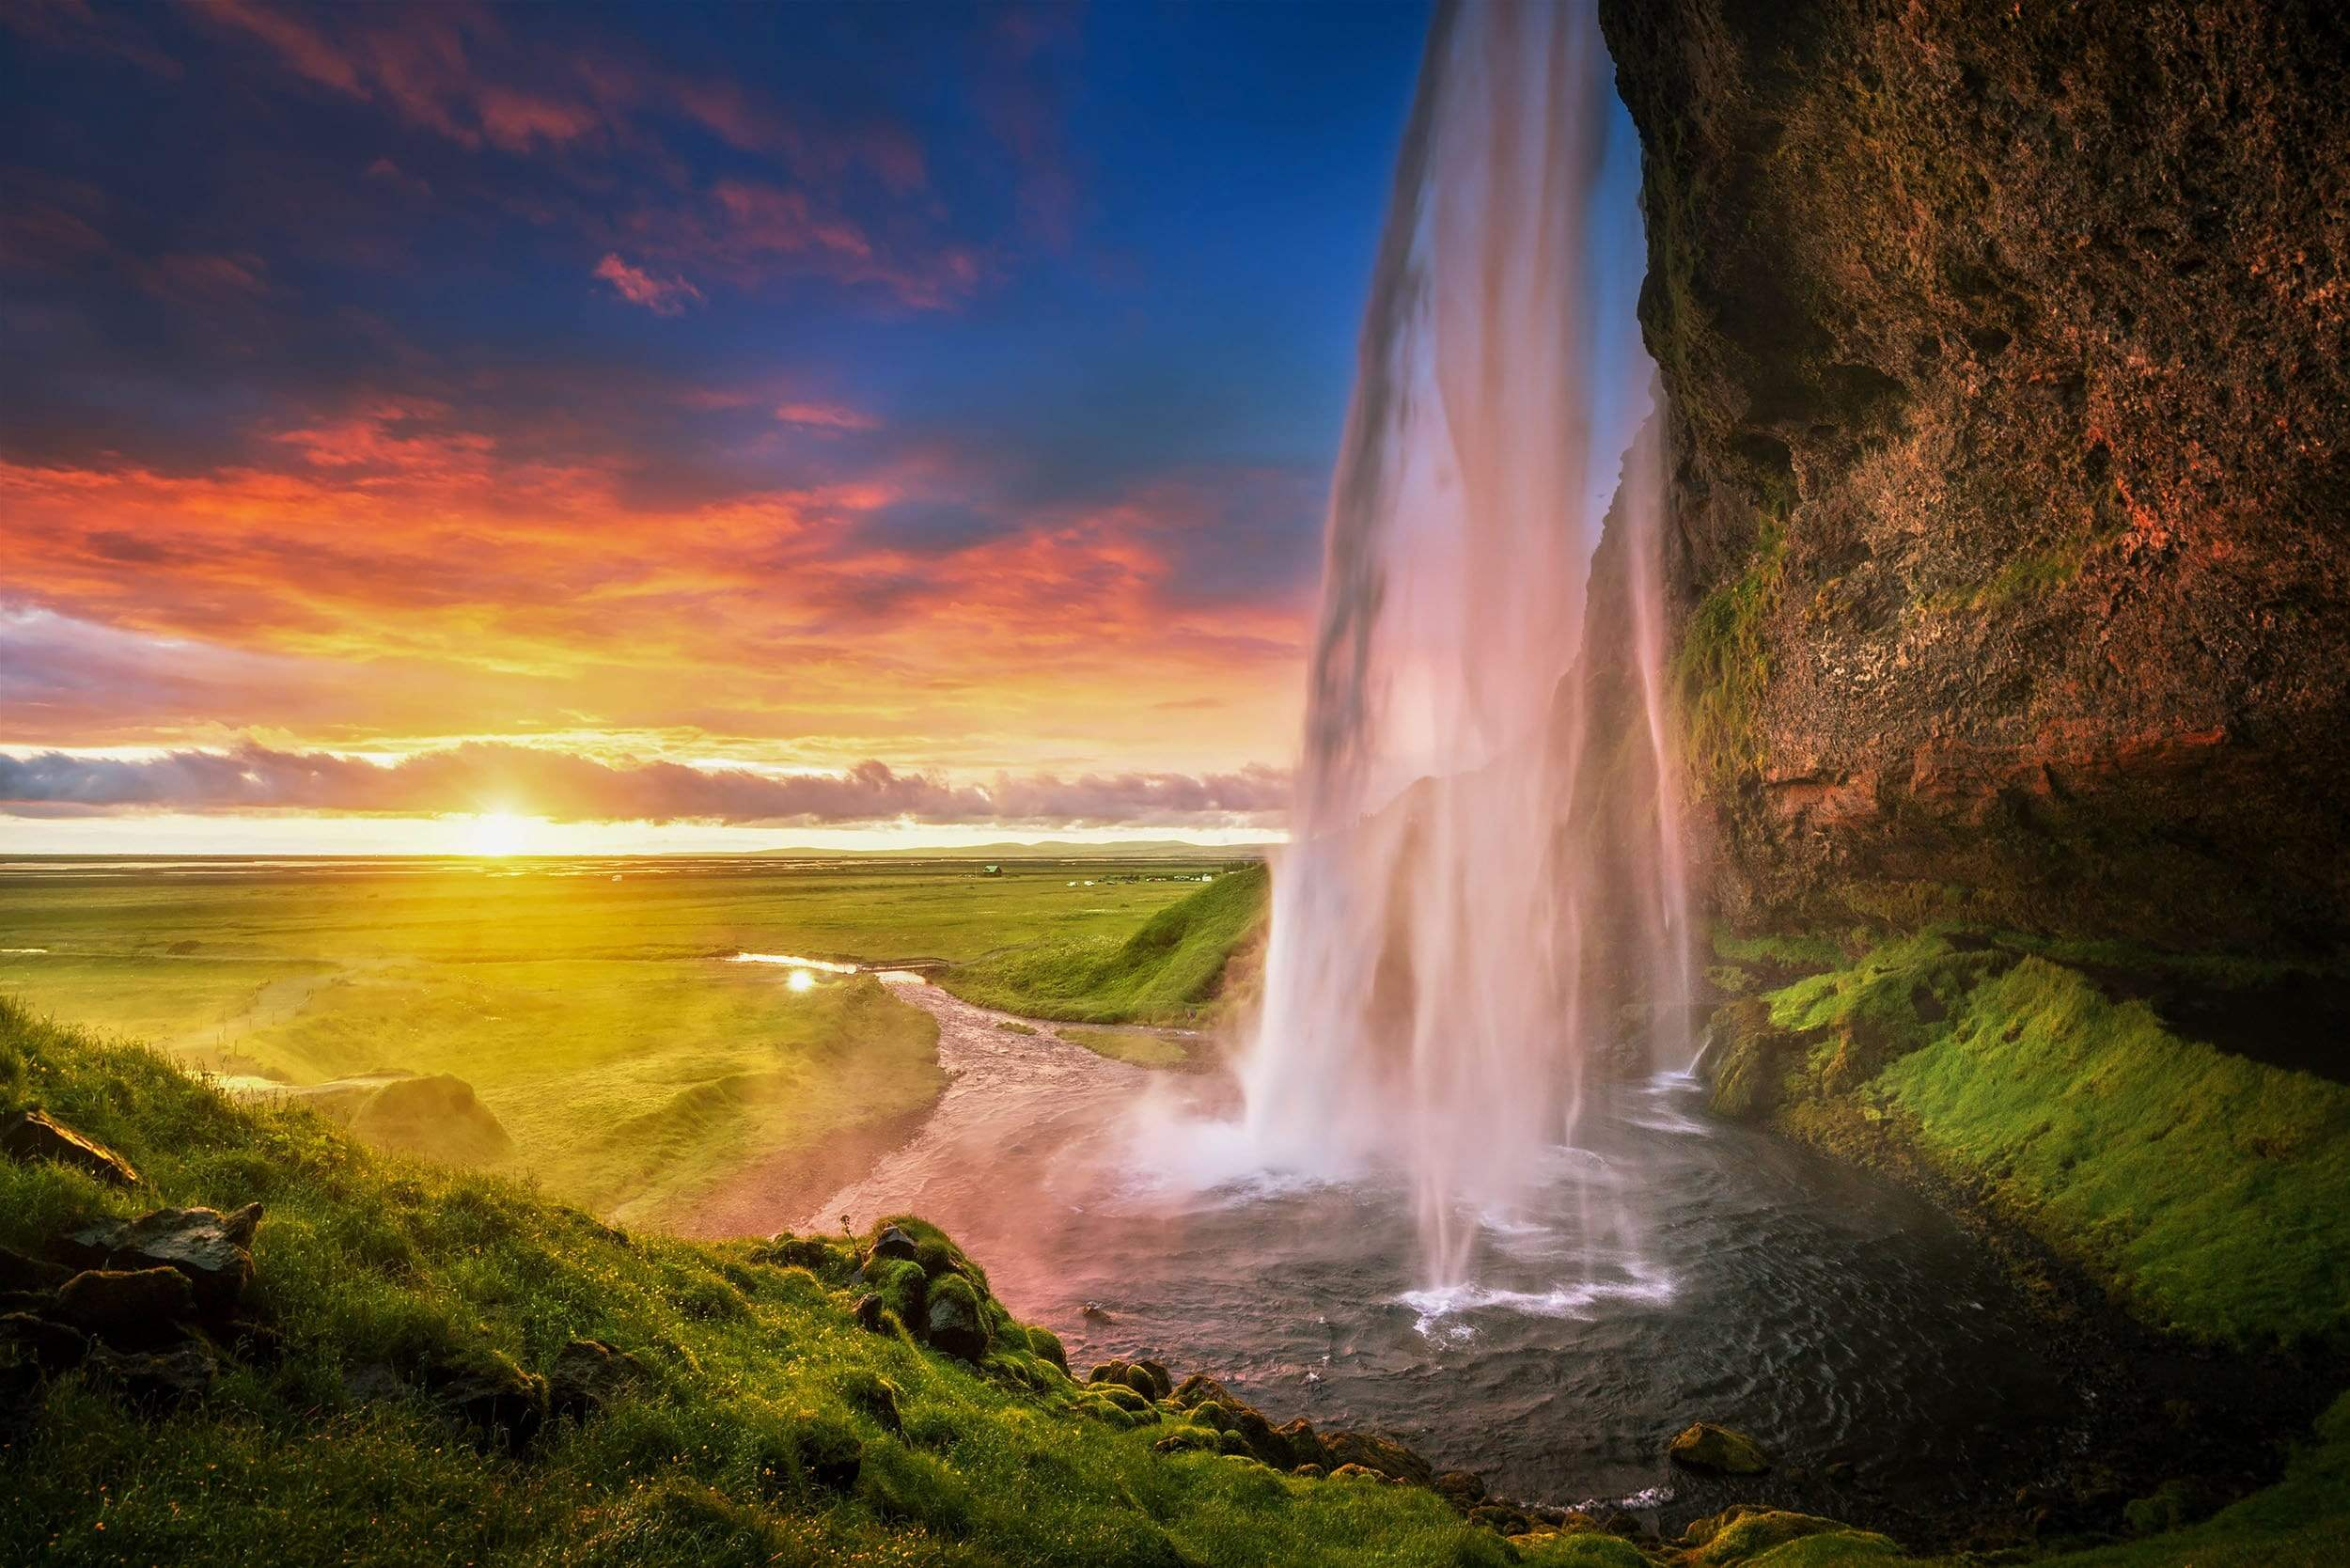 Waterfall flowing into River Sunset